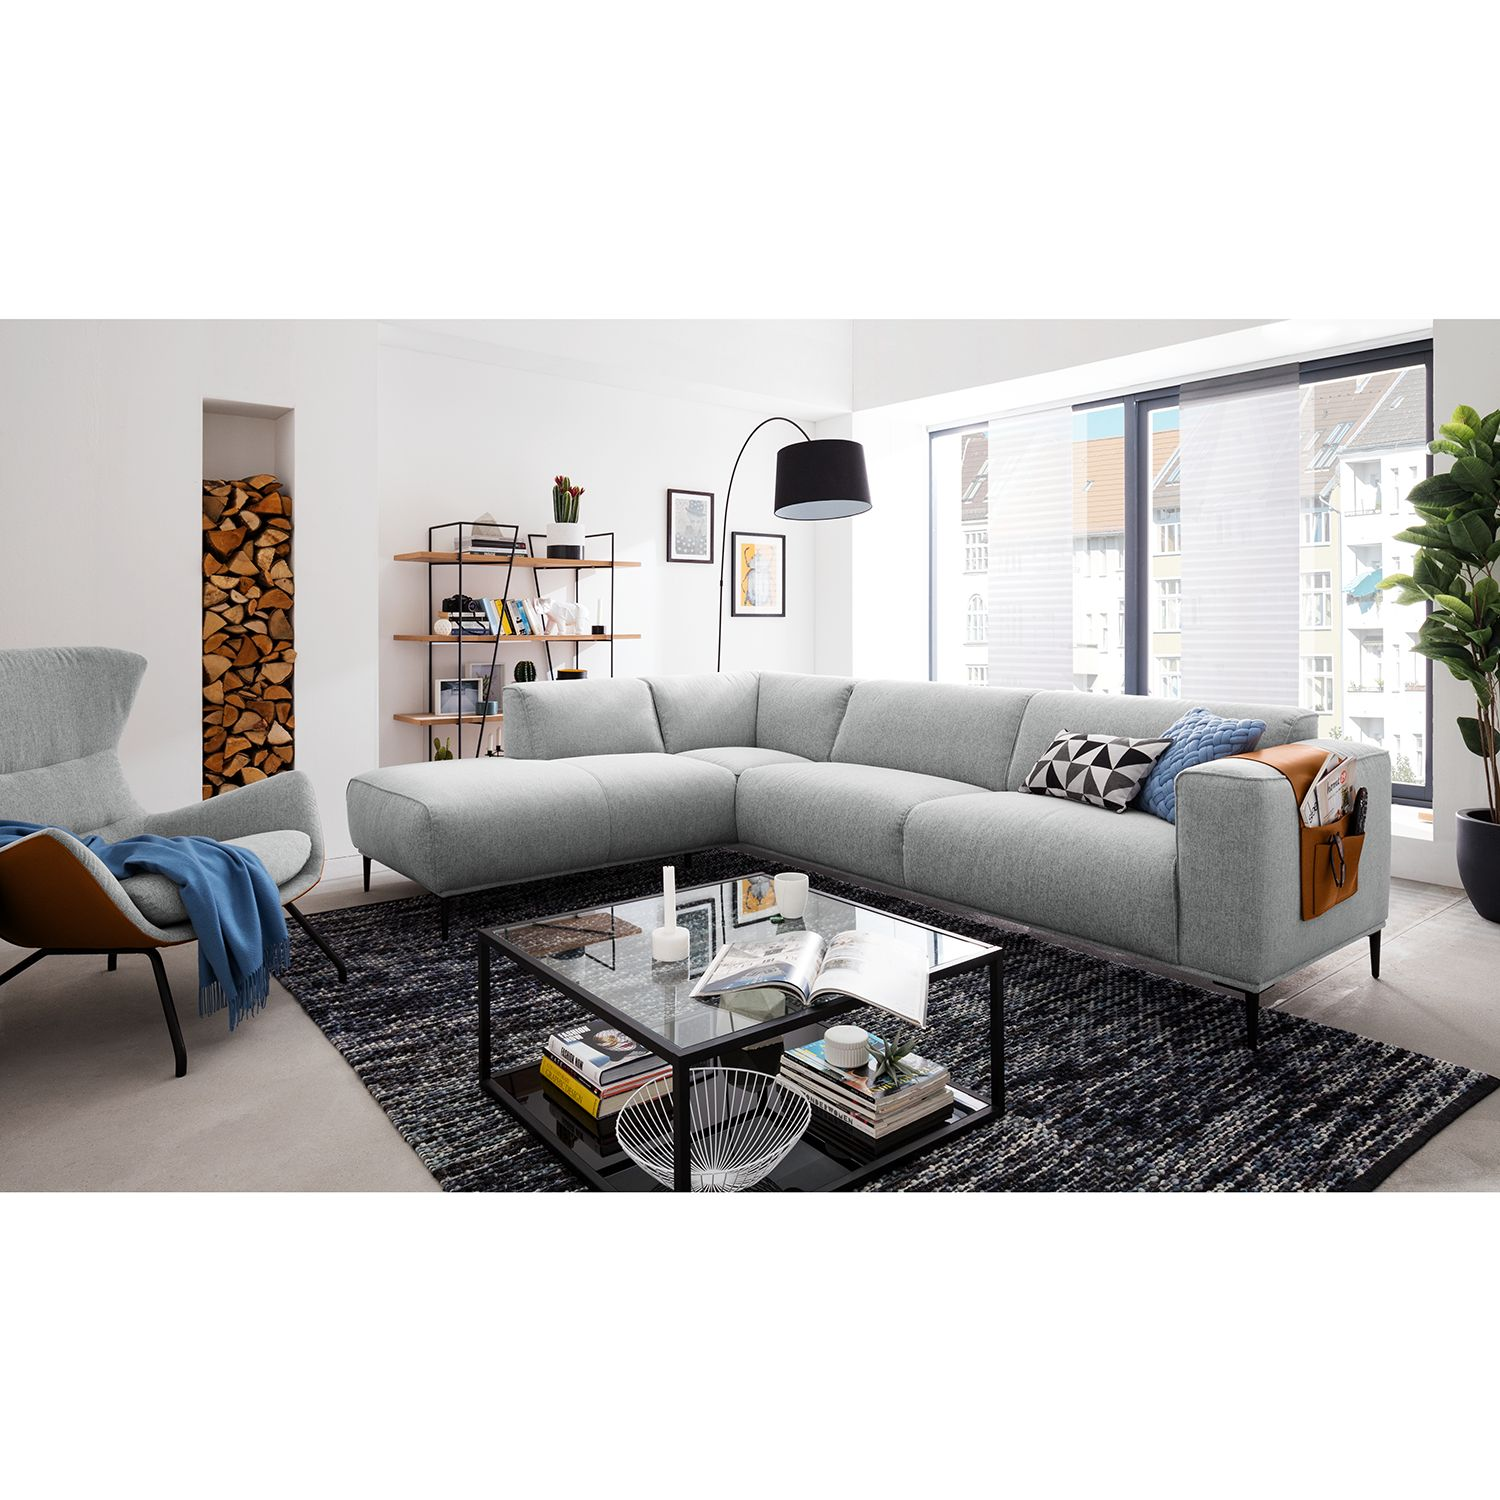 home24 Ecksofa Crawford Iii Webstoff